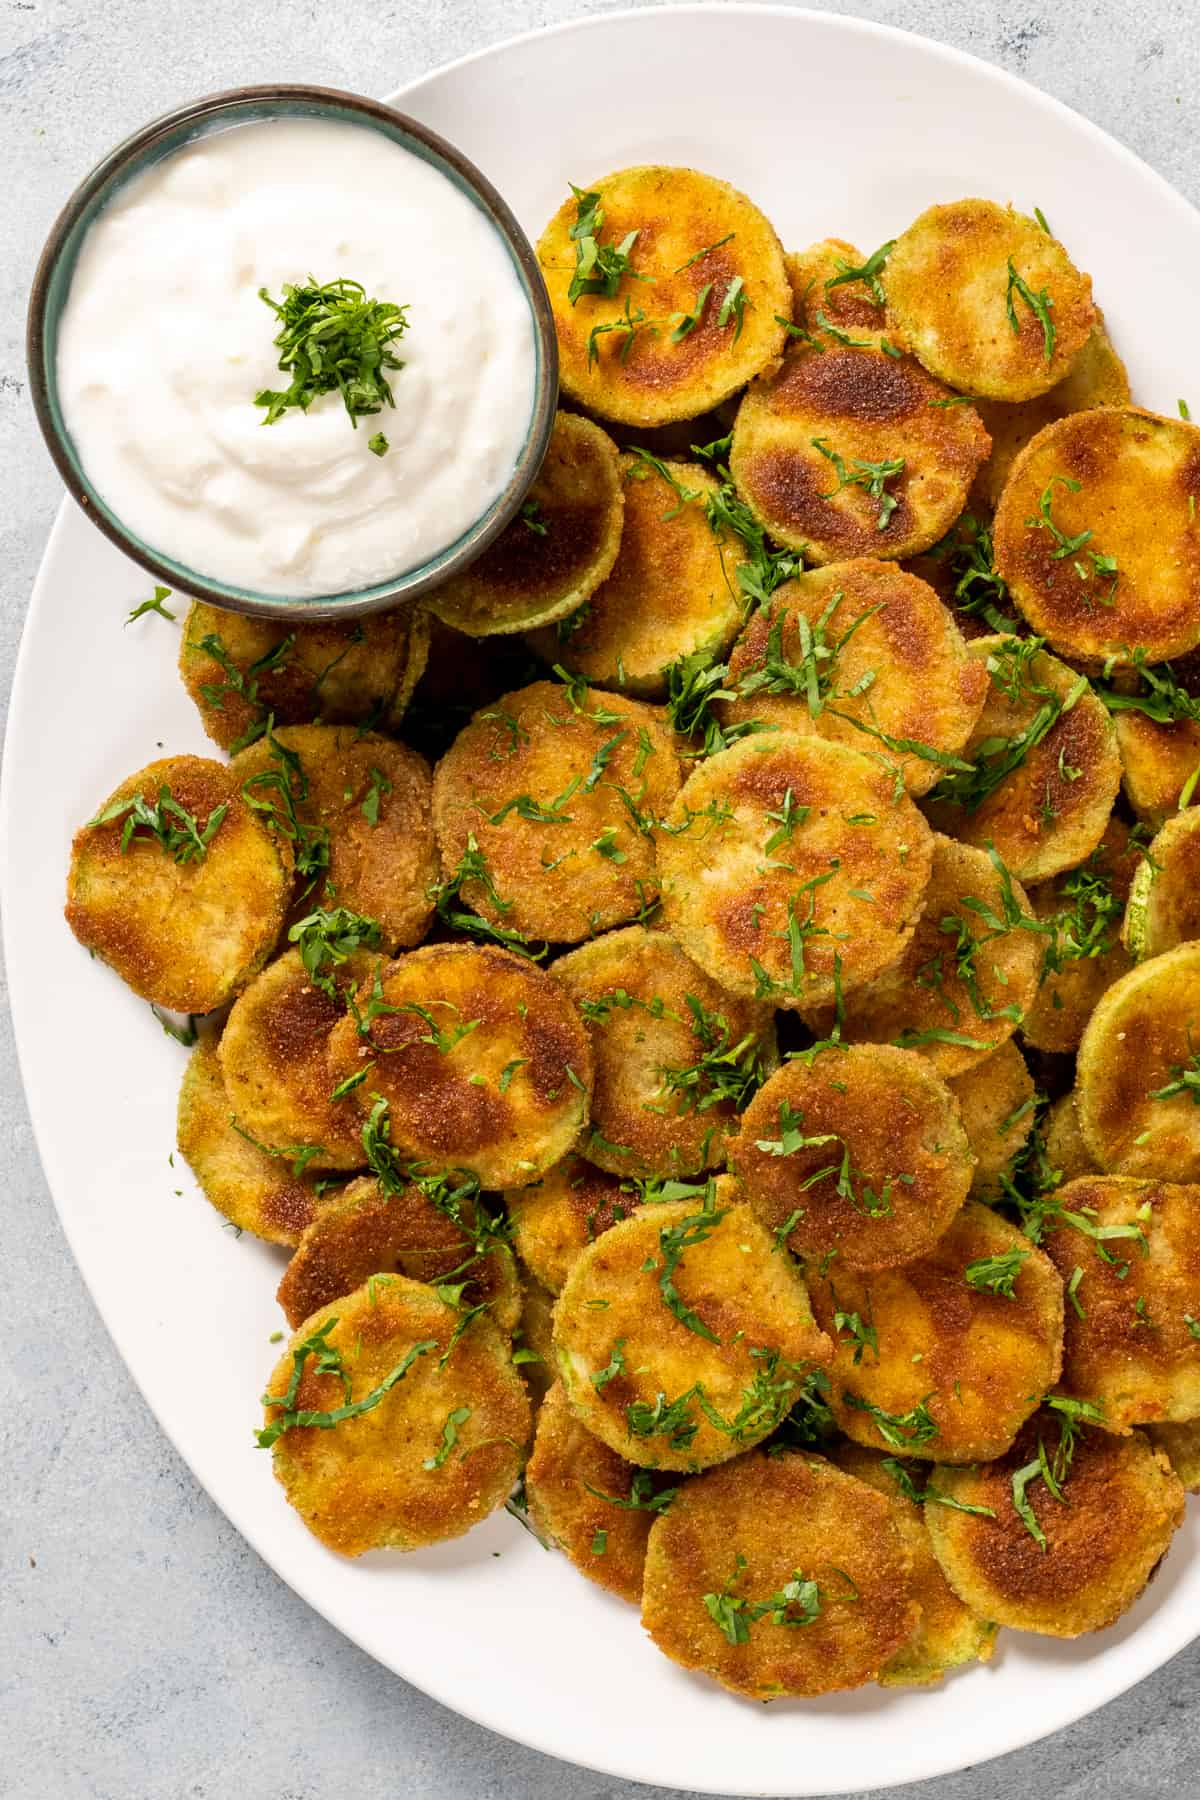 Fried zucchini chips served on a white oval dish and a small bowl of yogurt sauce on the side.